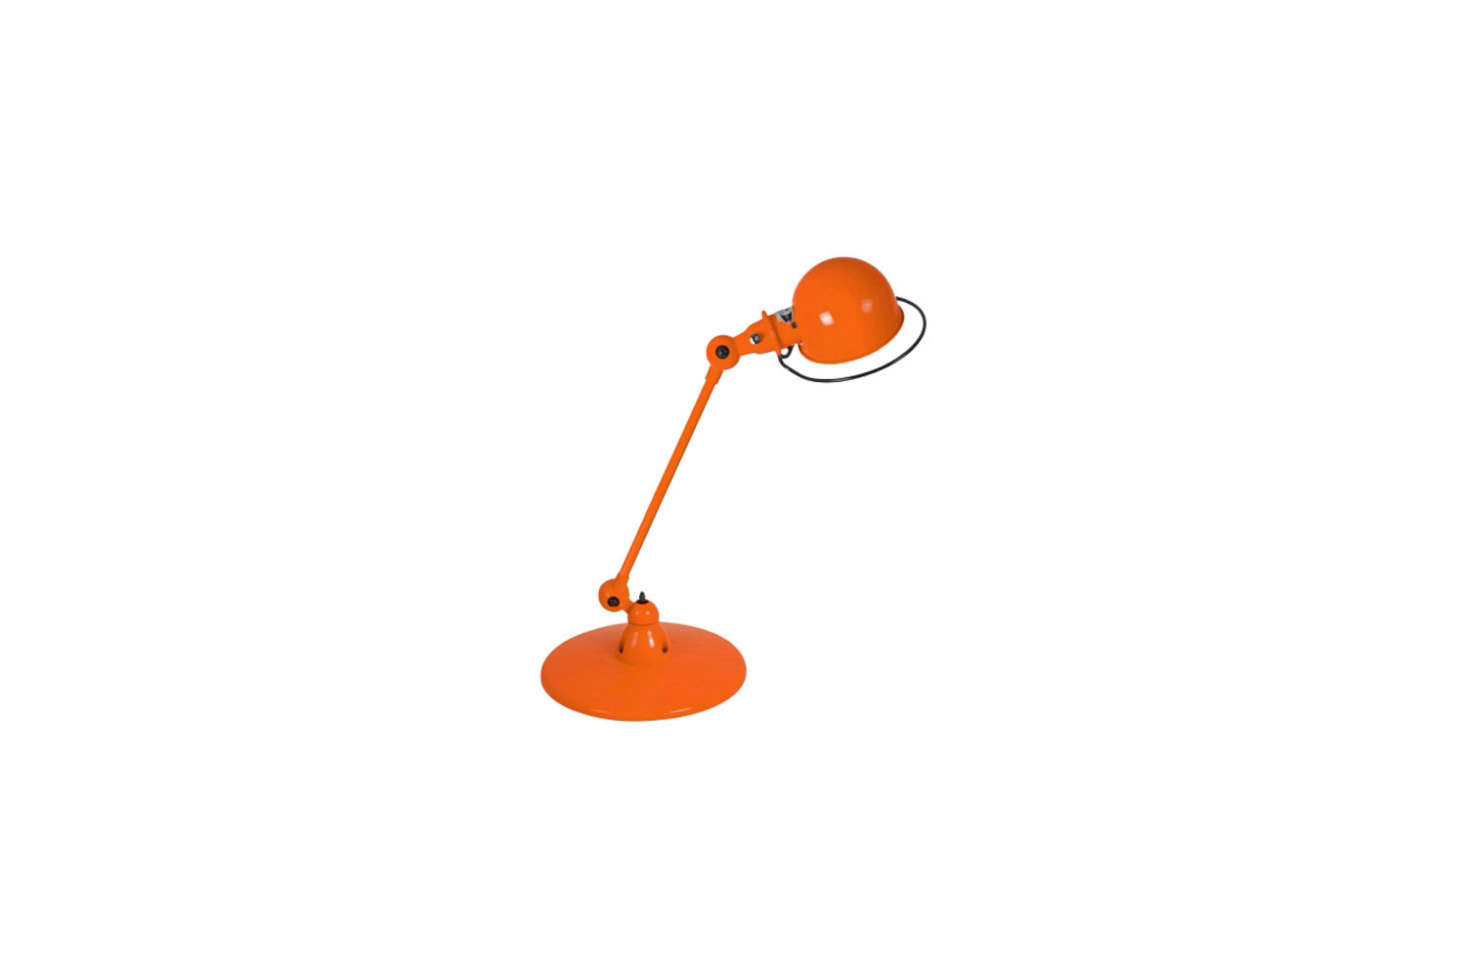 The Jielde Loft Desk Lamp D6000 in orange (shown) is a close match to the vintage Anglepoise orange light in the kitchen. You can source it from Horne for $src=